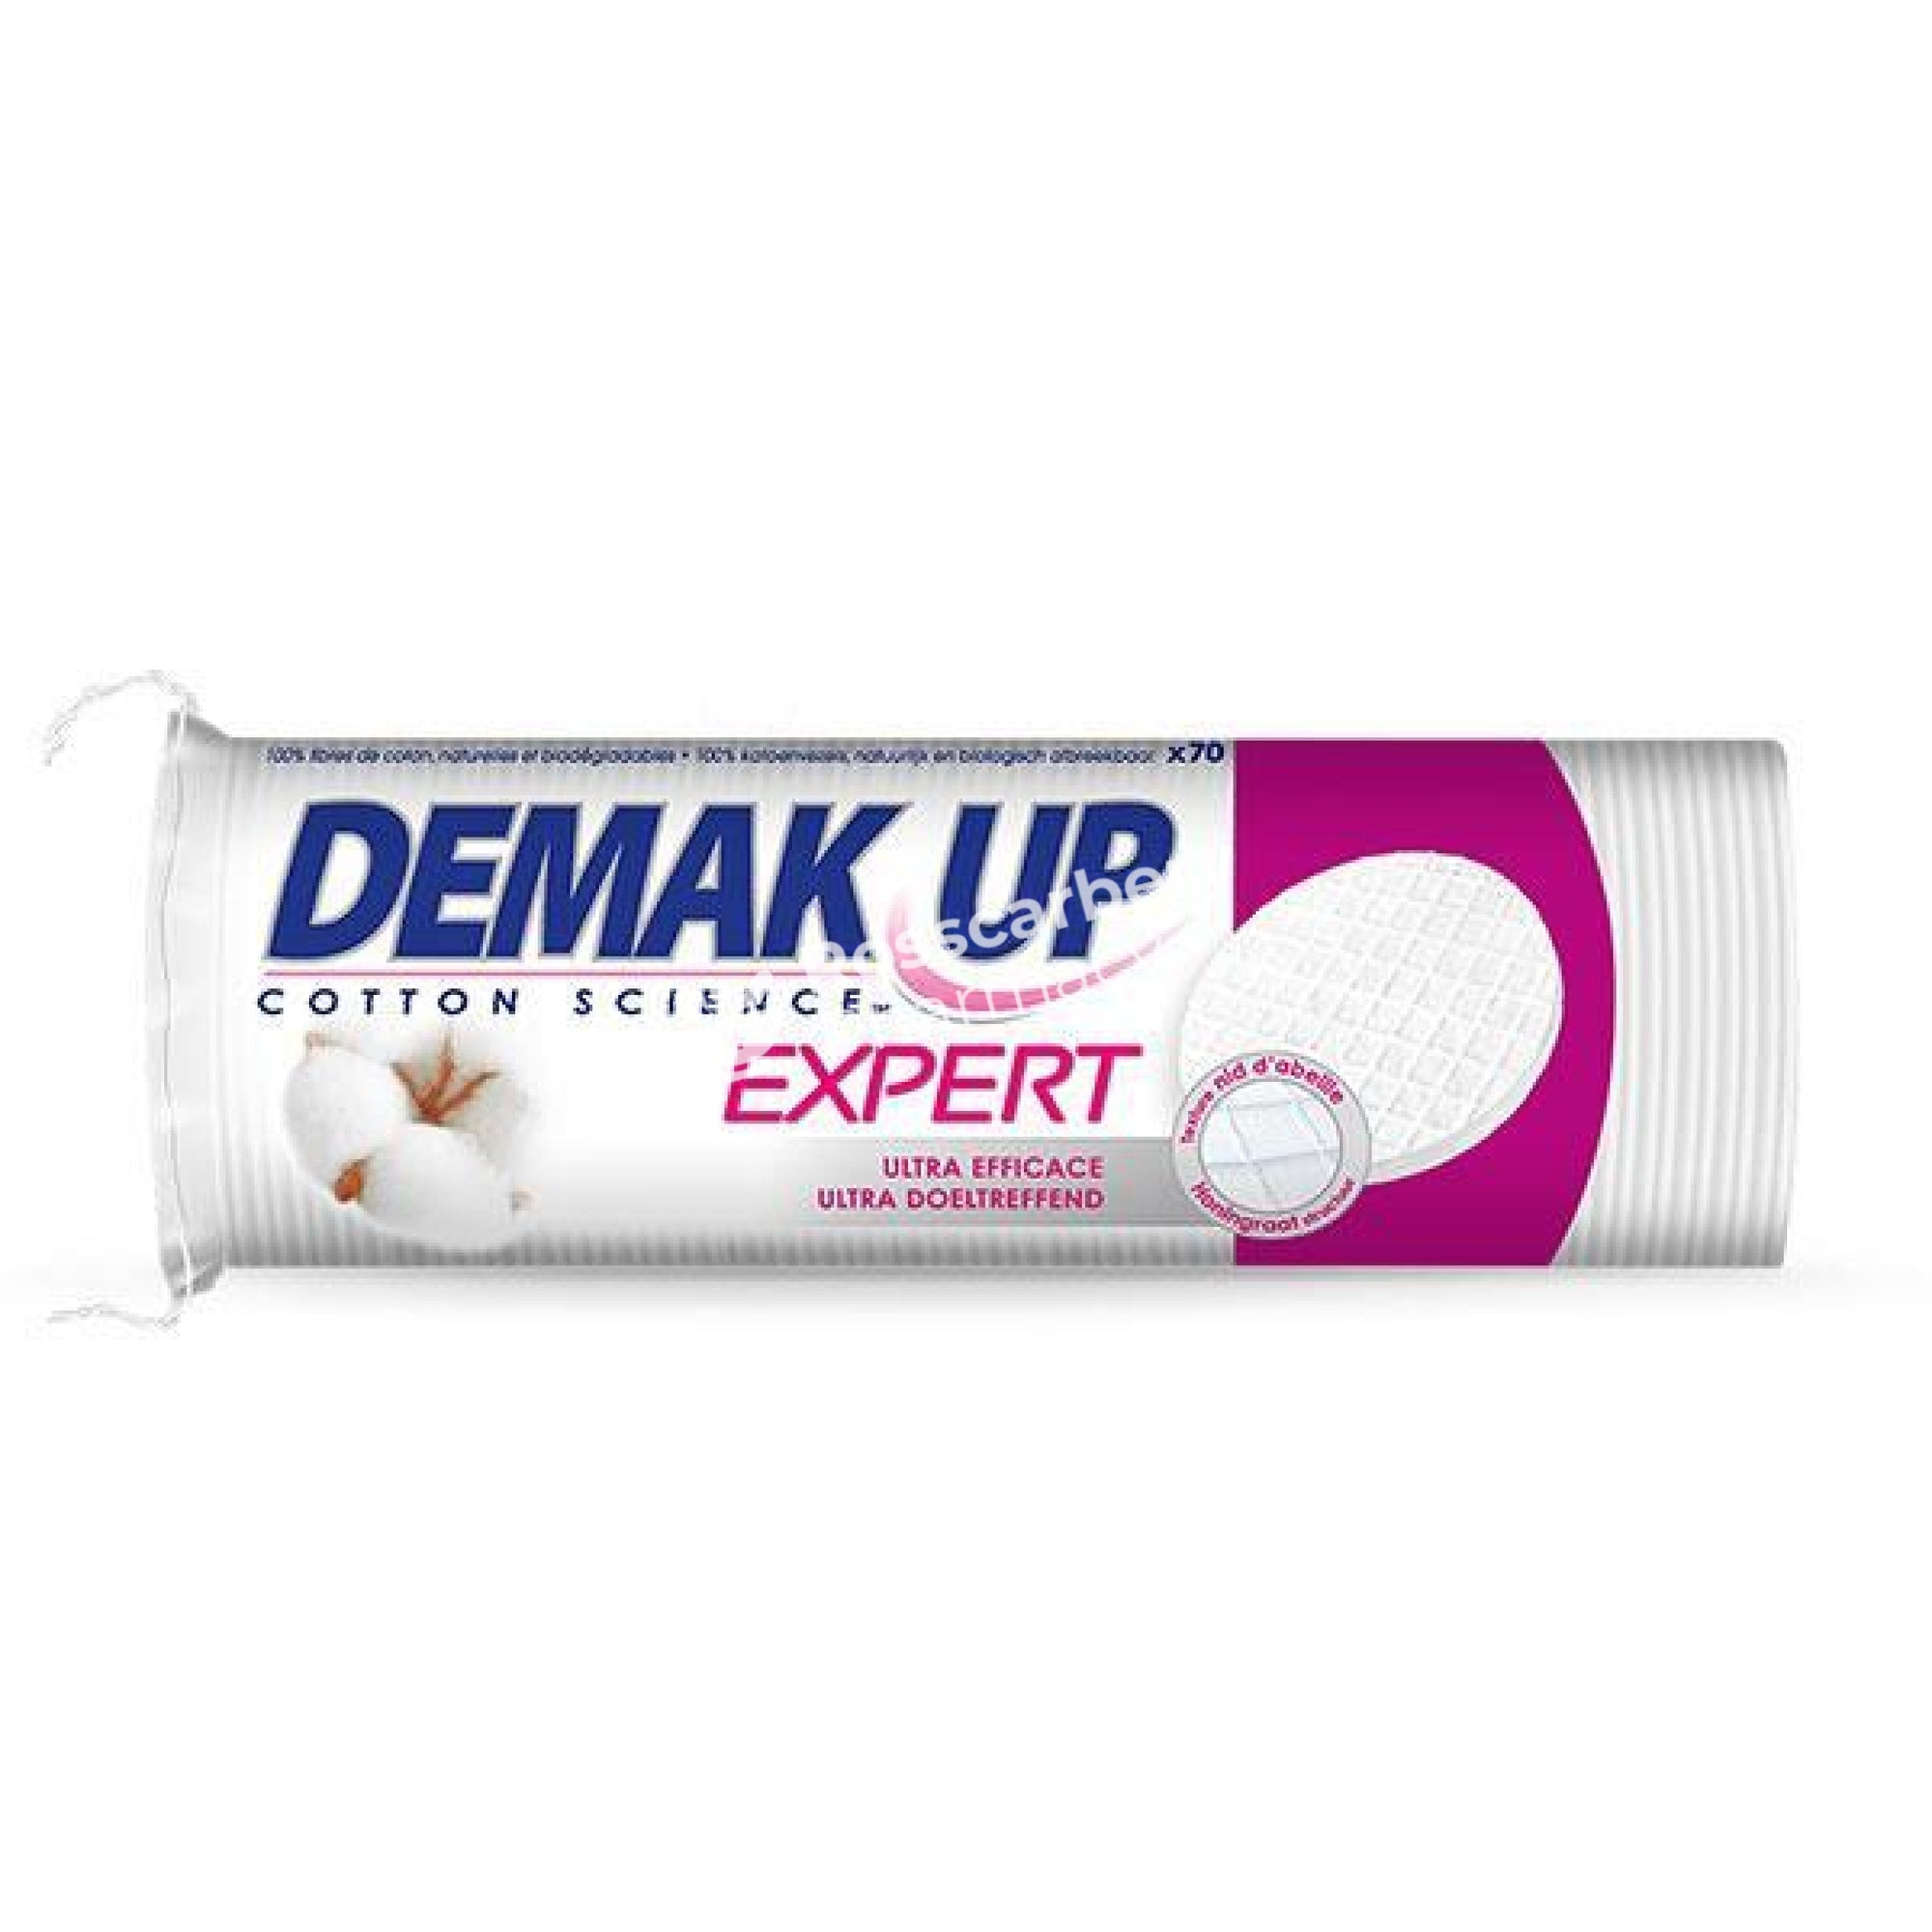 Demak Up Round Cotton Pads 84 Pads Wool Wipes & Tissues